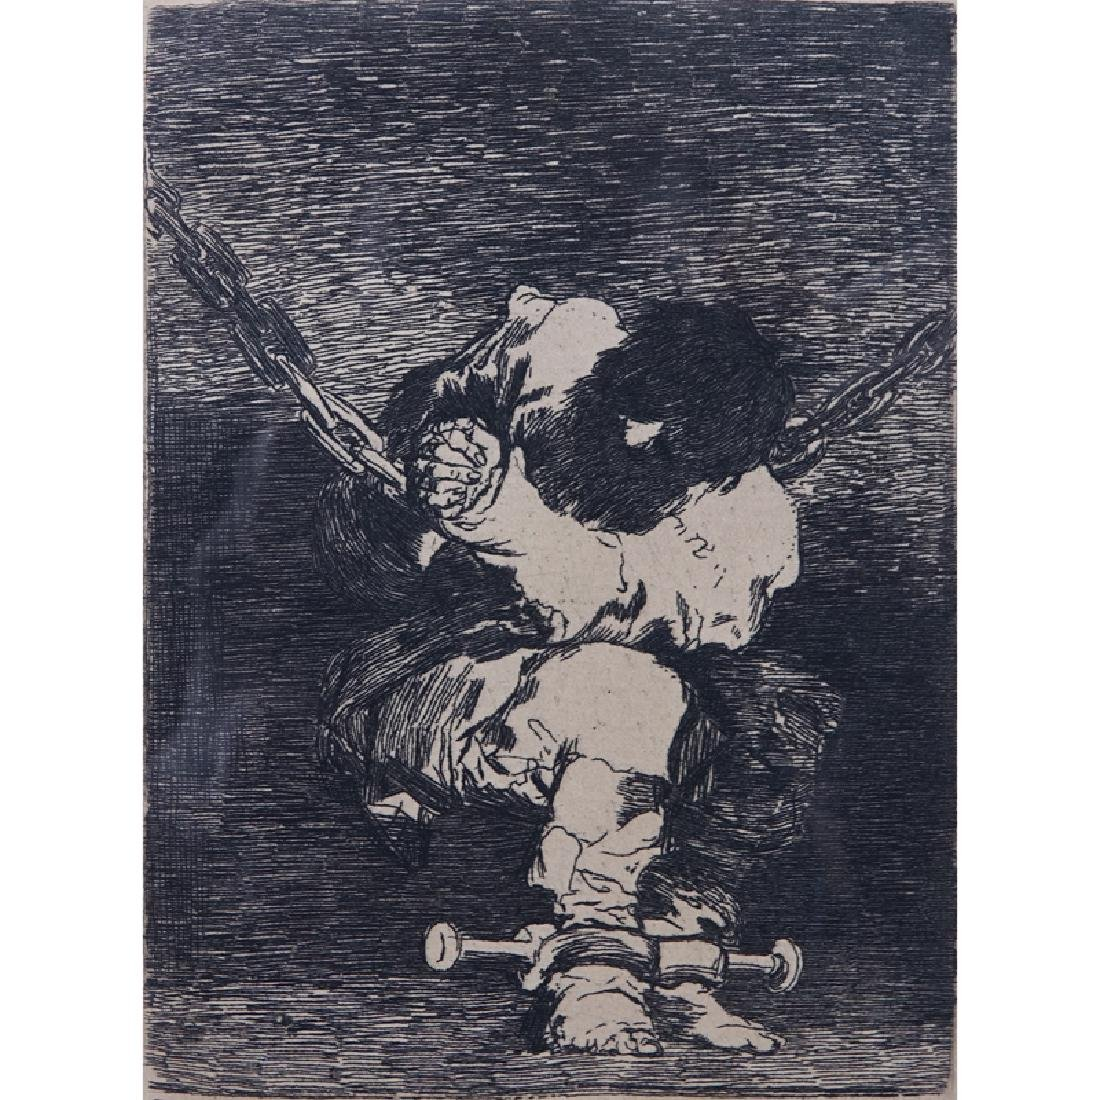 Francisco de Goya (Spanish, 1746-1828) Etching from